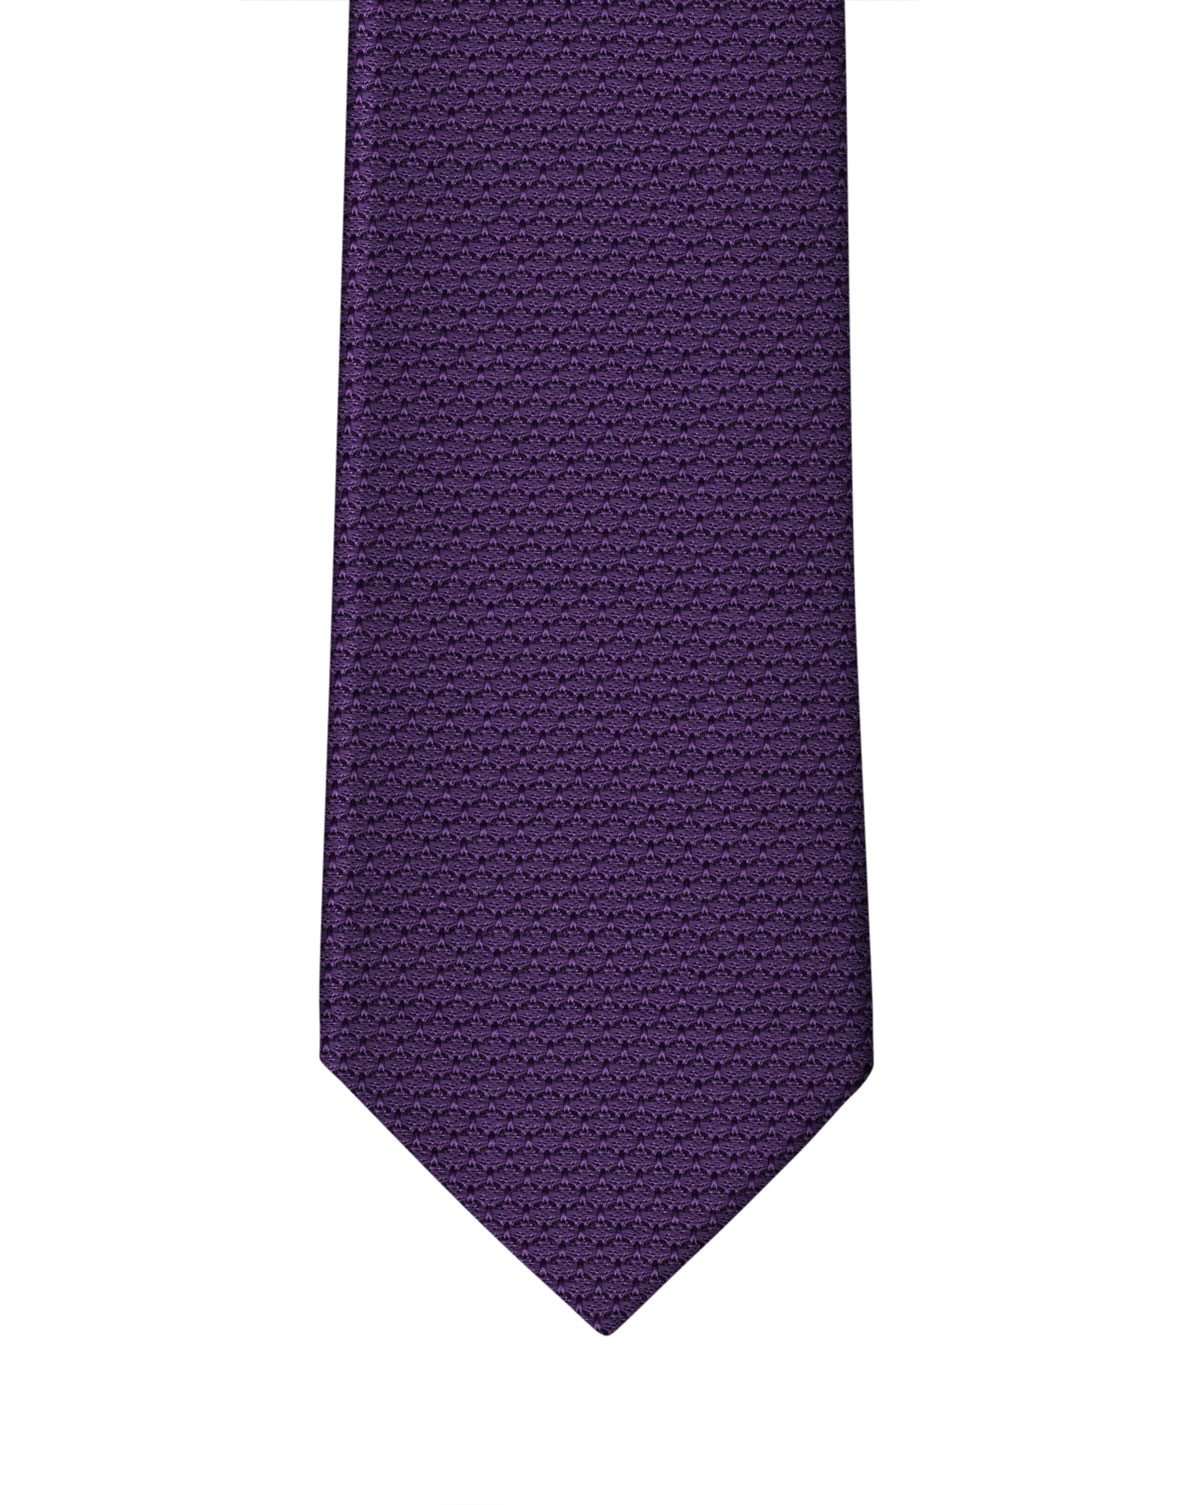 Purple Grenadine Necktie